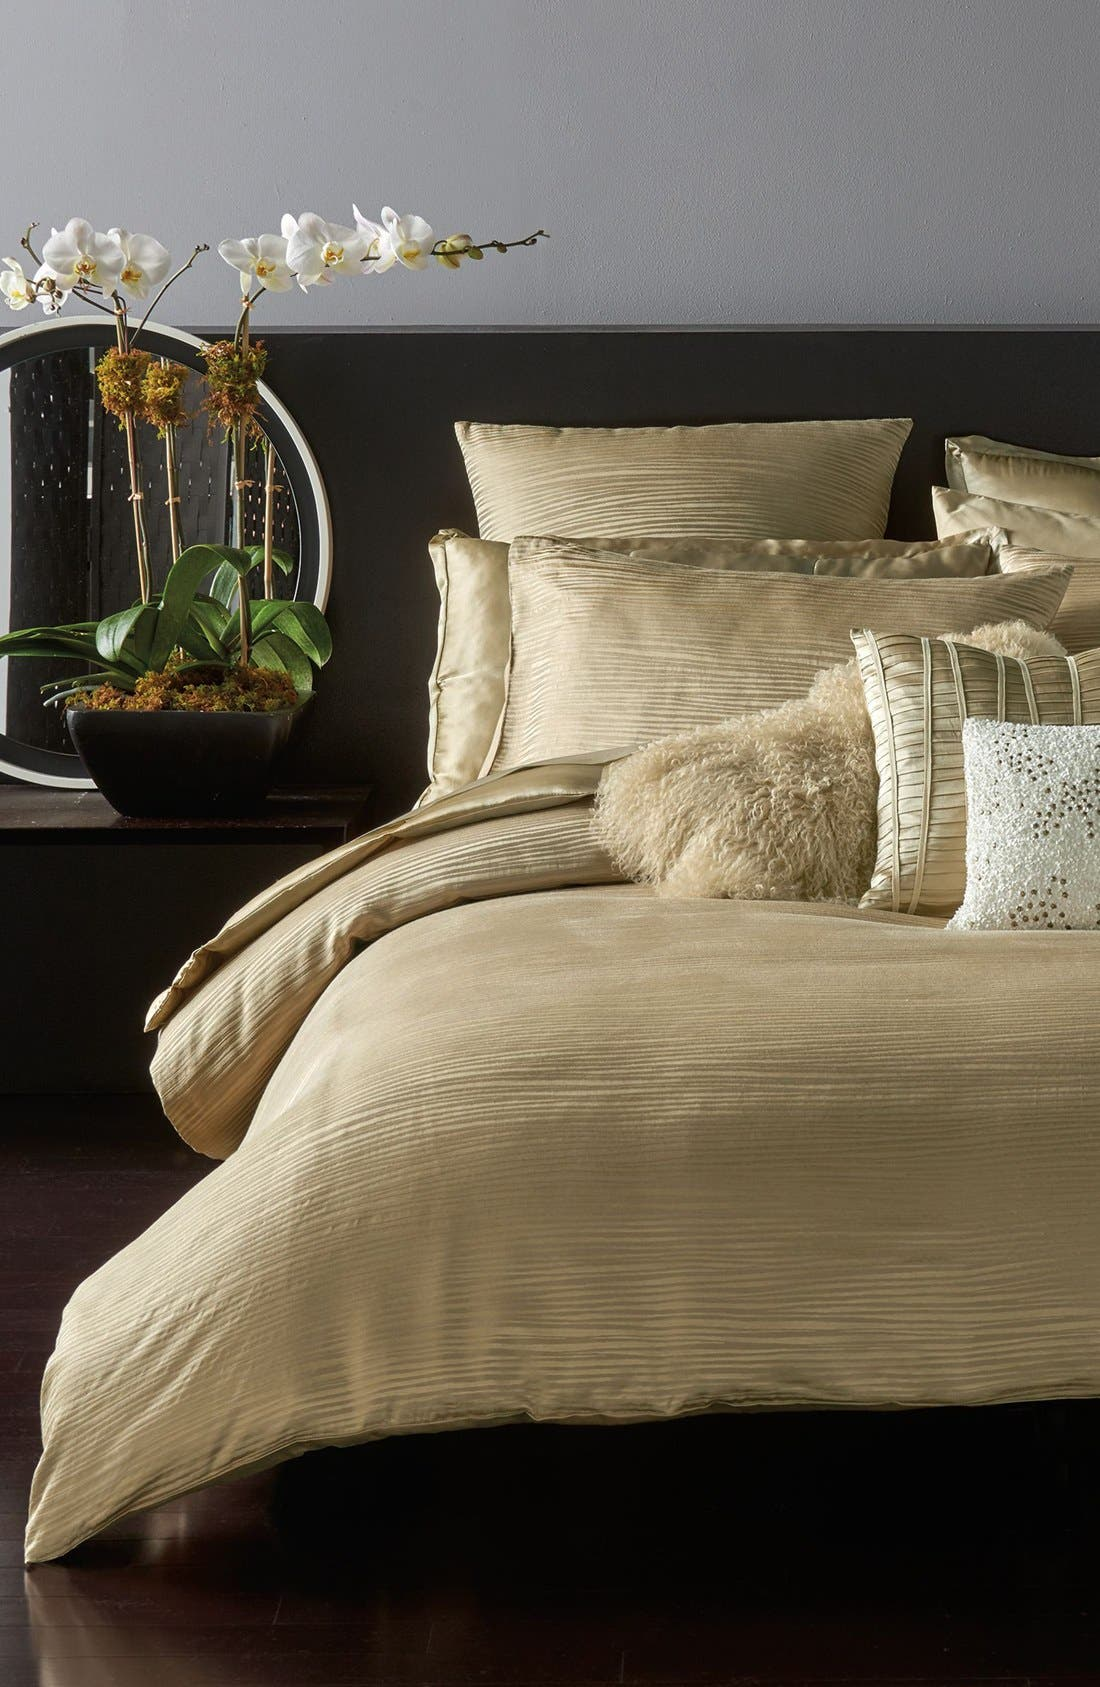 Donna Karan Collection 'Reflection' Duvet Cover,                             Main thumbnail 1, color,                             GOLD DUST